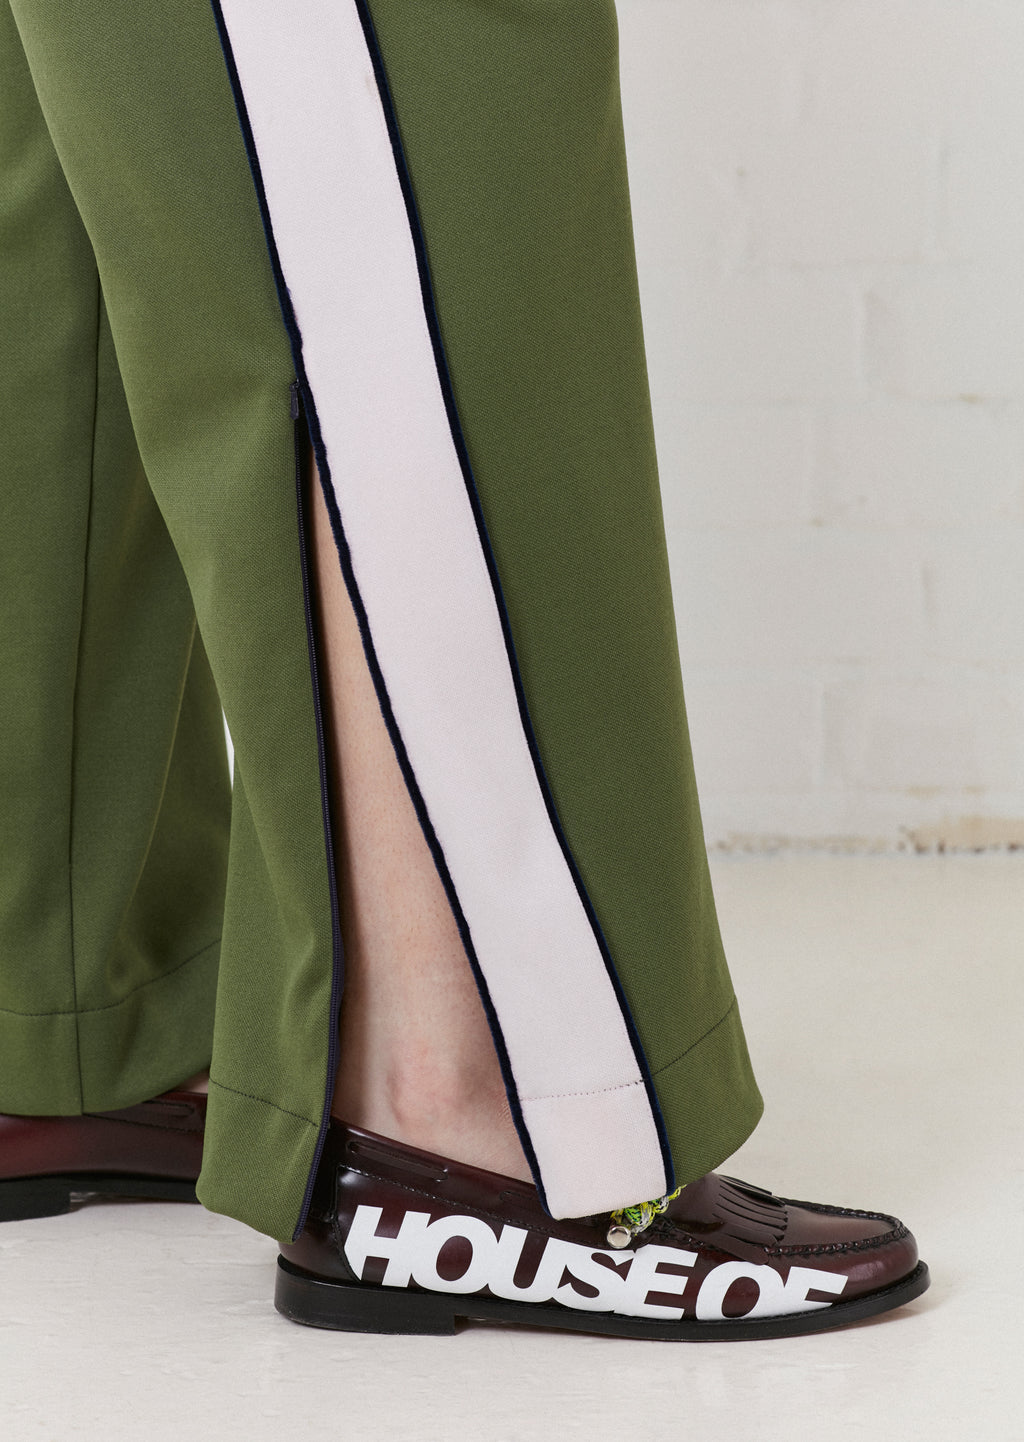 'Missy' Contrast Panelled Track Pant (Pink & Olive Green) | House of Holland